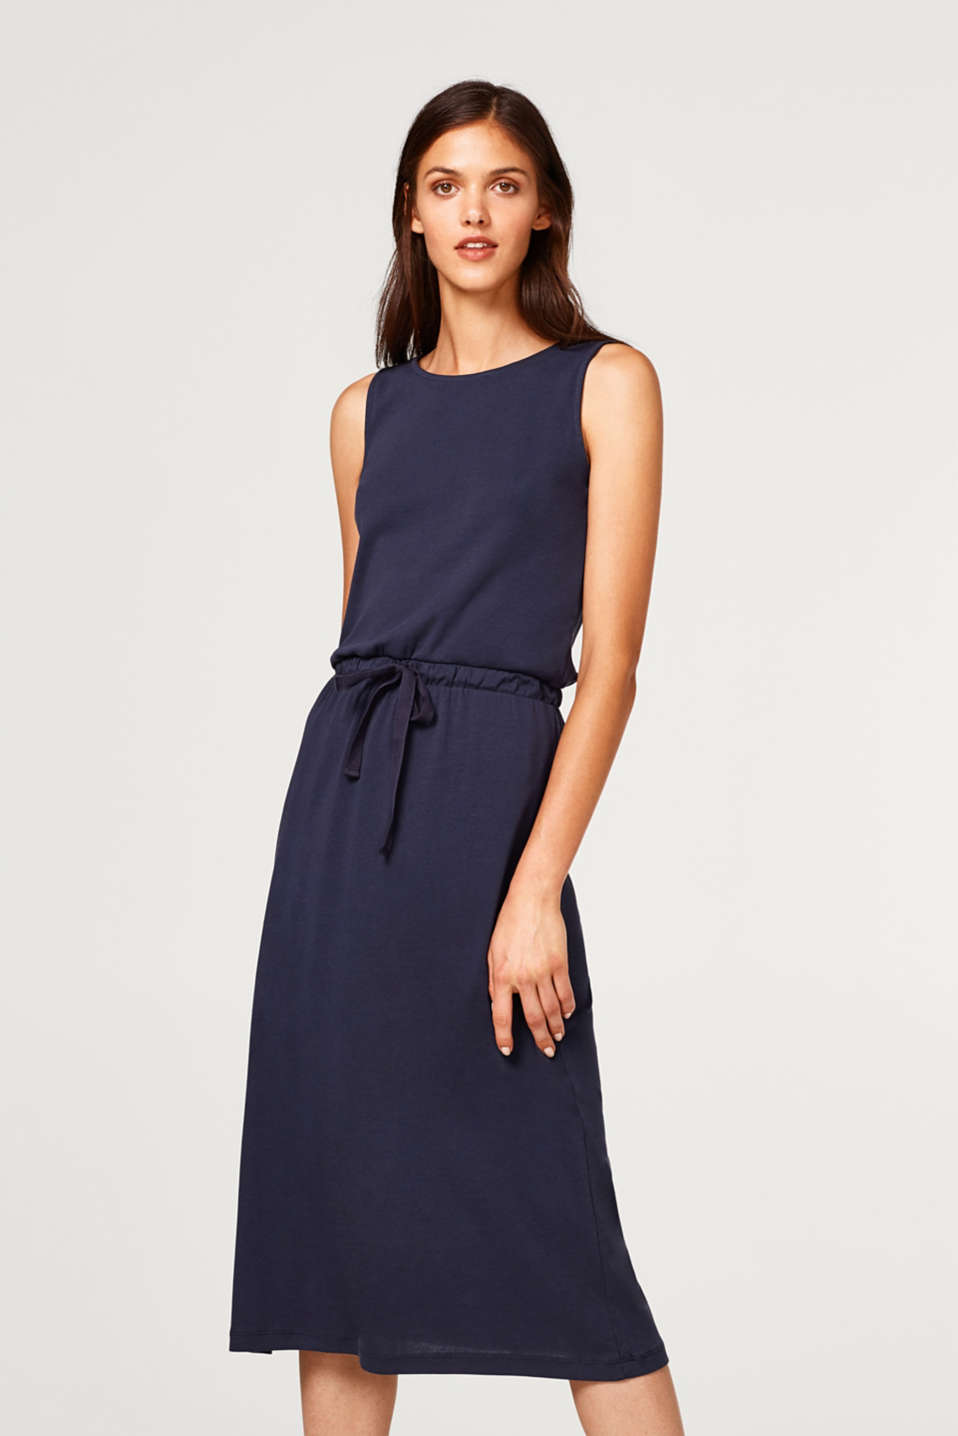 Esprit - Jersey dress with a drawstring, 100% cotton